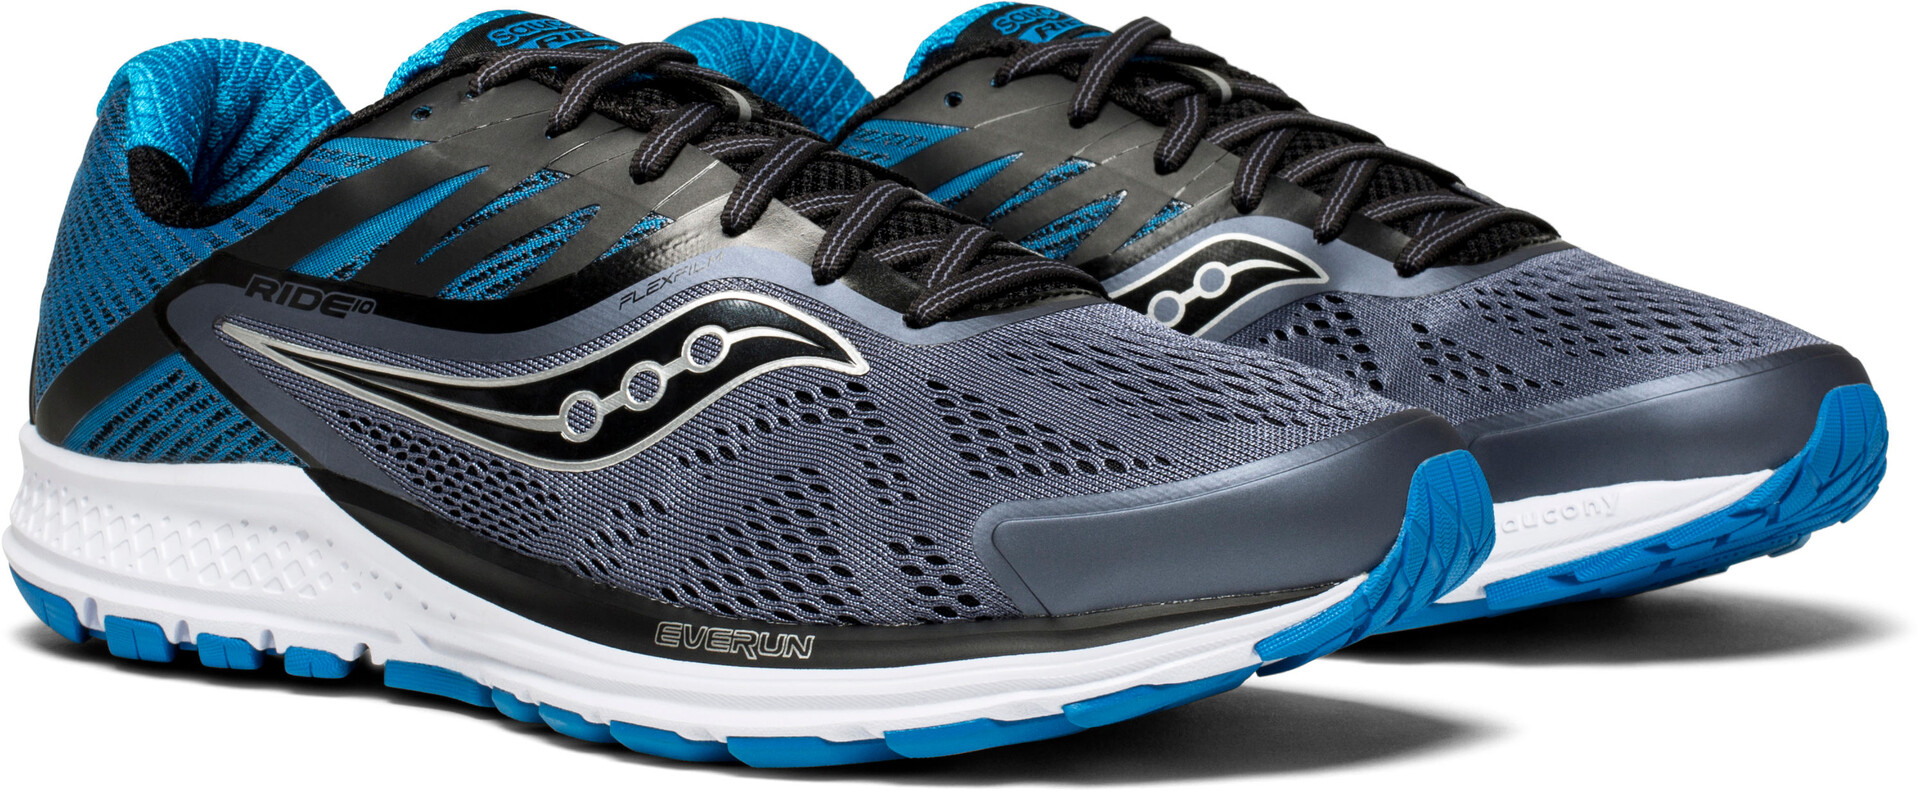 Chaussures Sur Running Saucony Grisbleu 10 Campz Homme Ride T7xYE